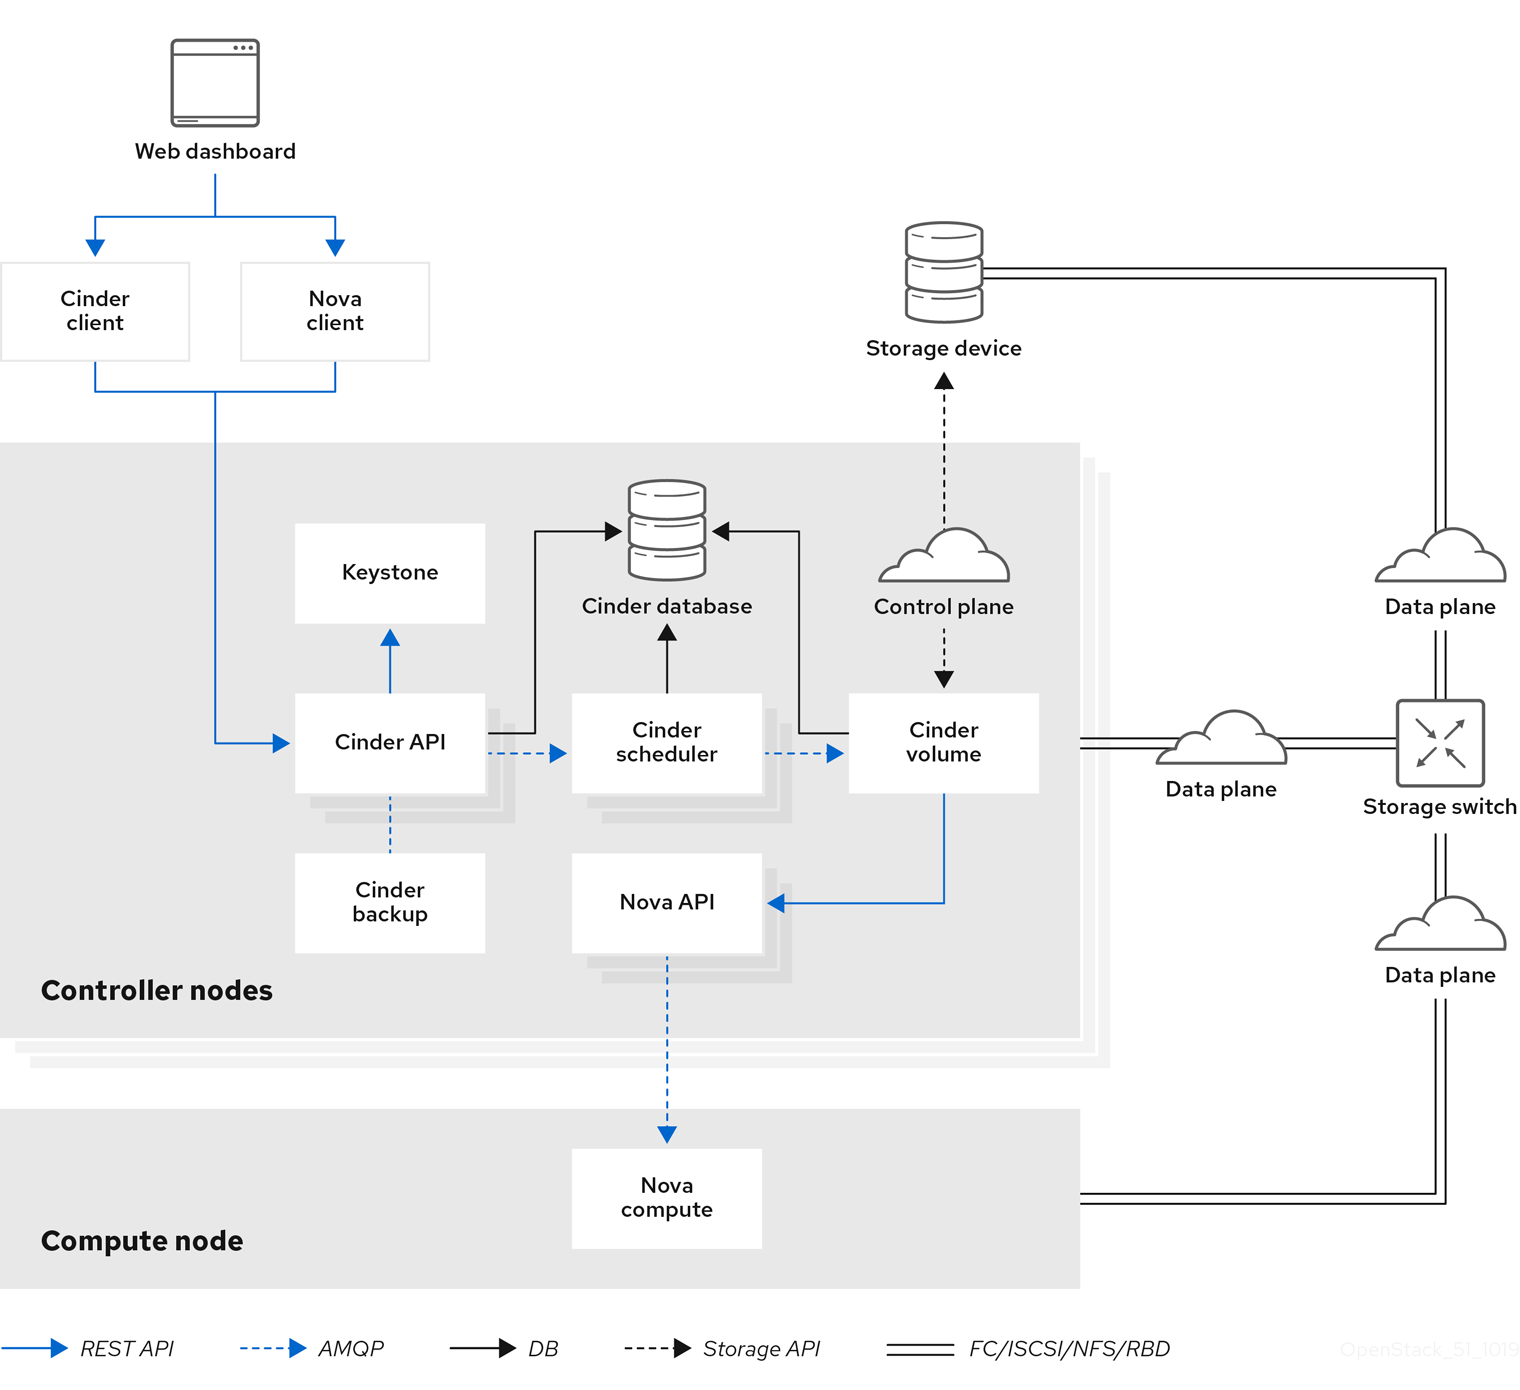 Graphic depicts the logical input/output data paths of a Red Hat OpenStack Platform deployment configured using cinder multipath I/O